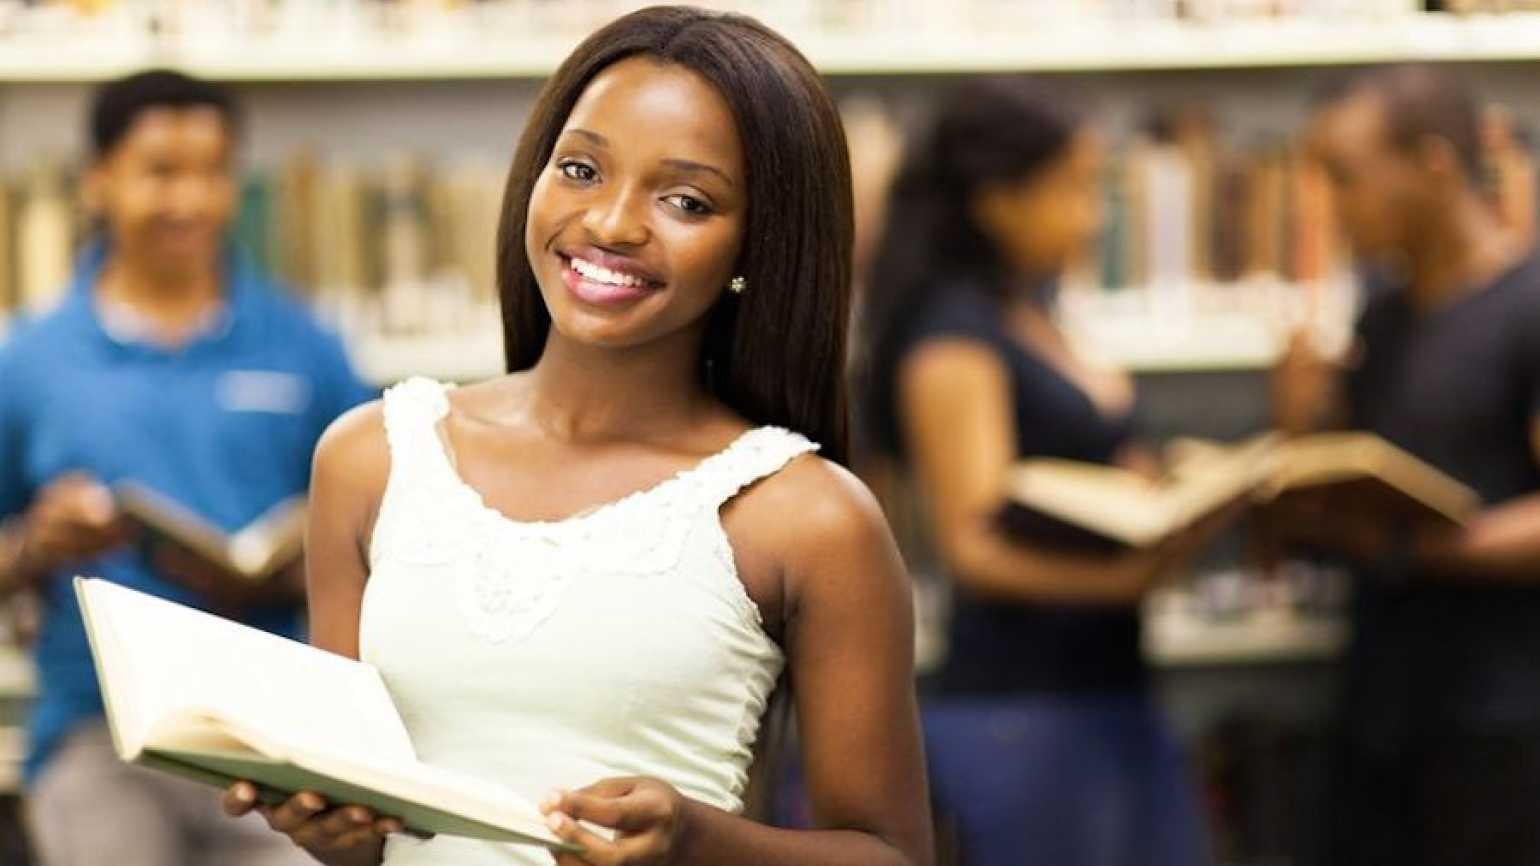 Young woman at college. (Thinkstock)